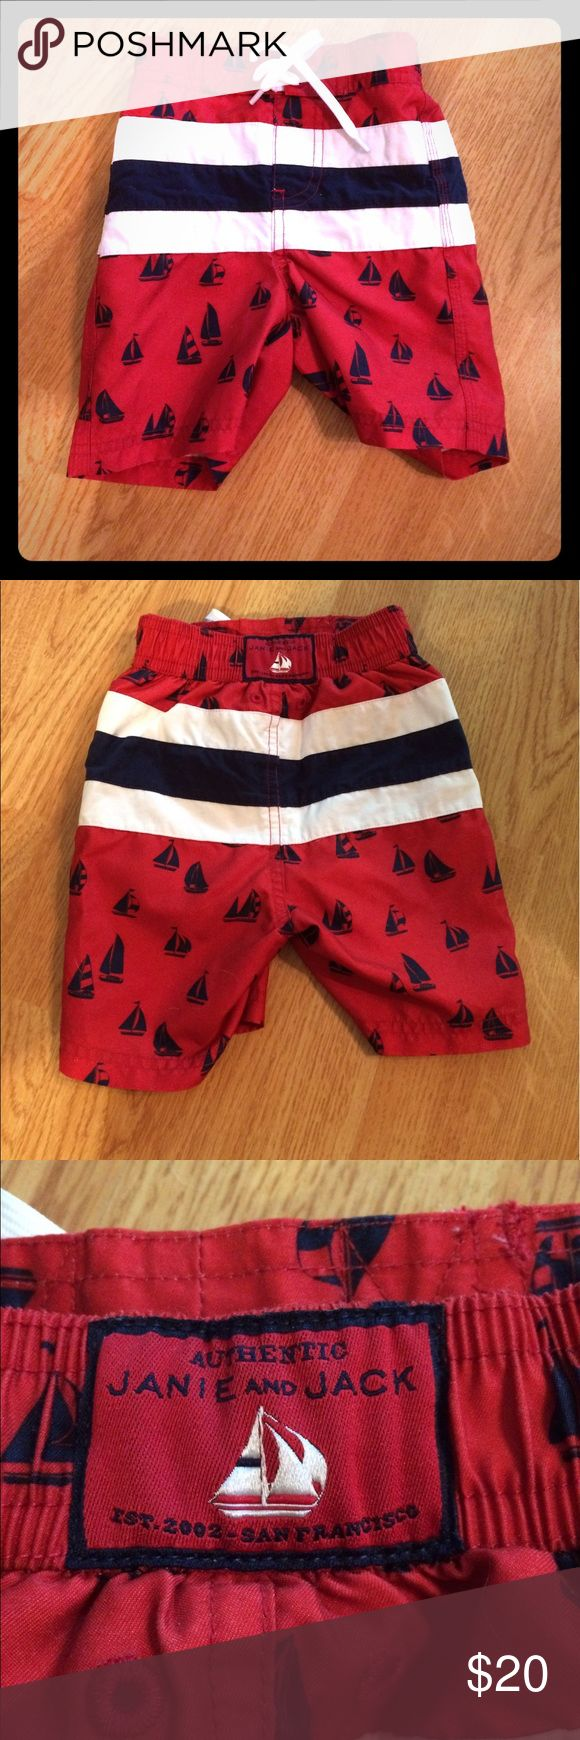 Janie and Jack Sailboat Swim Trunks 6-12 months Janie and Jack Sailboat Swim Trunks 6-12 months *Excellent Condition* Red, White & Navy Blue BUNDLE with my other listings for a DEAL!!! Janie and Jack Swim Swim Trunks